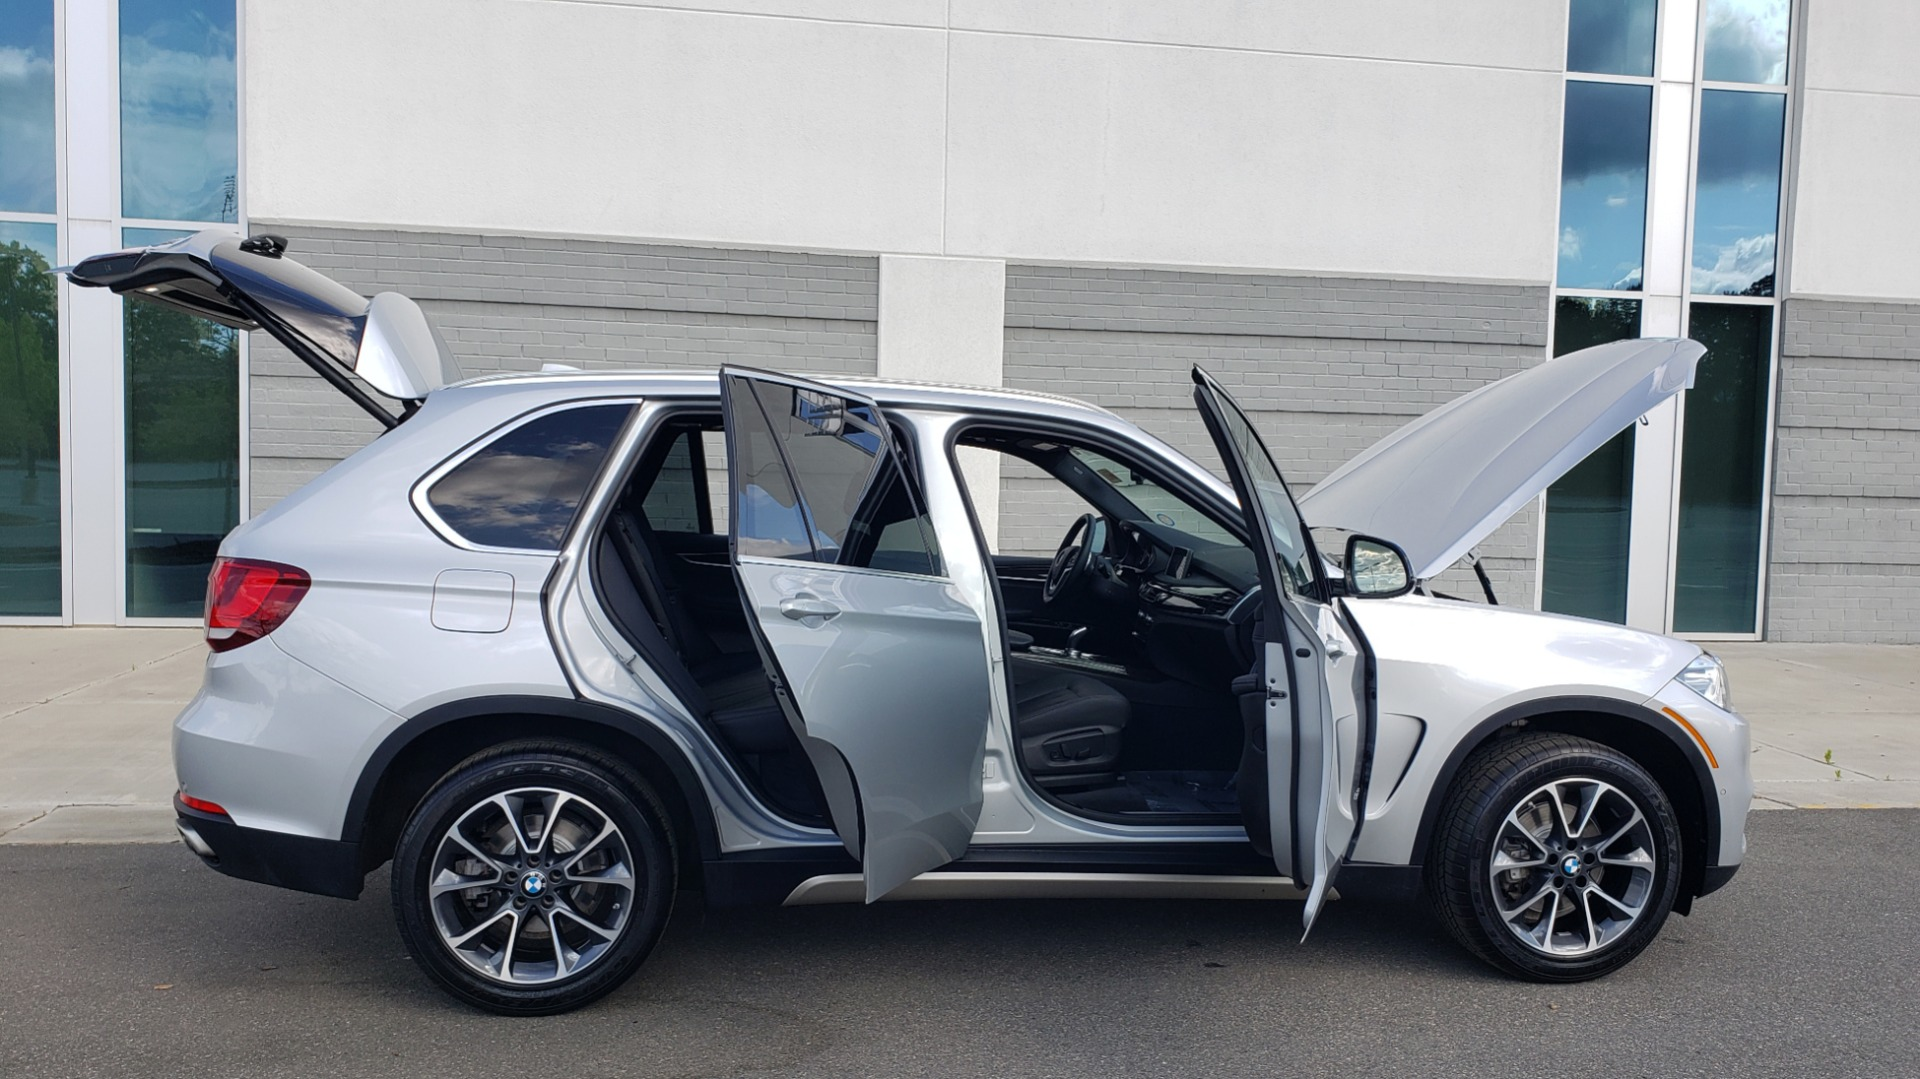 Used 2018 BMW X5 XDRIVE35I PREMIUM / NAV / PANO-ROOF / DRIVER ASST / REARVIEW for sale Sold at Formula Imports in Charlotte NC 28227 14